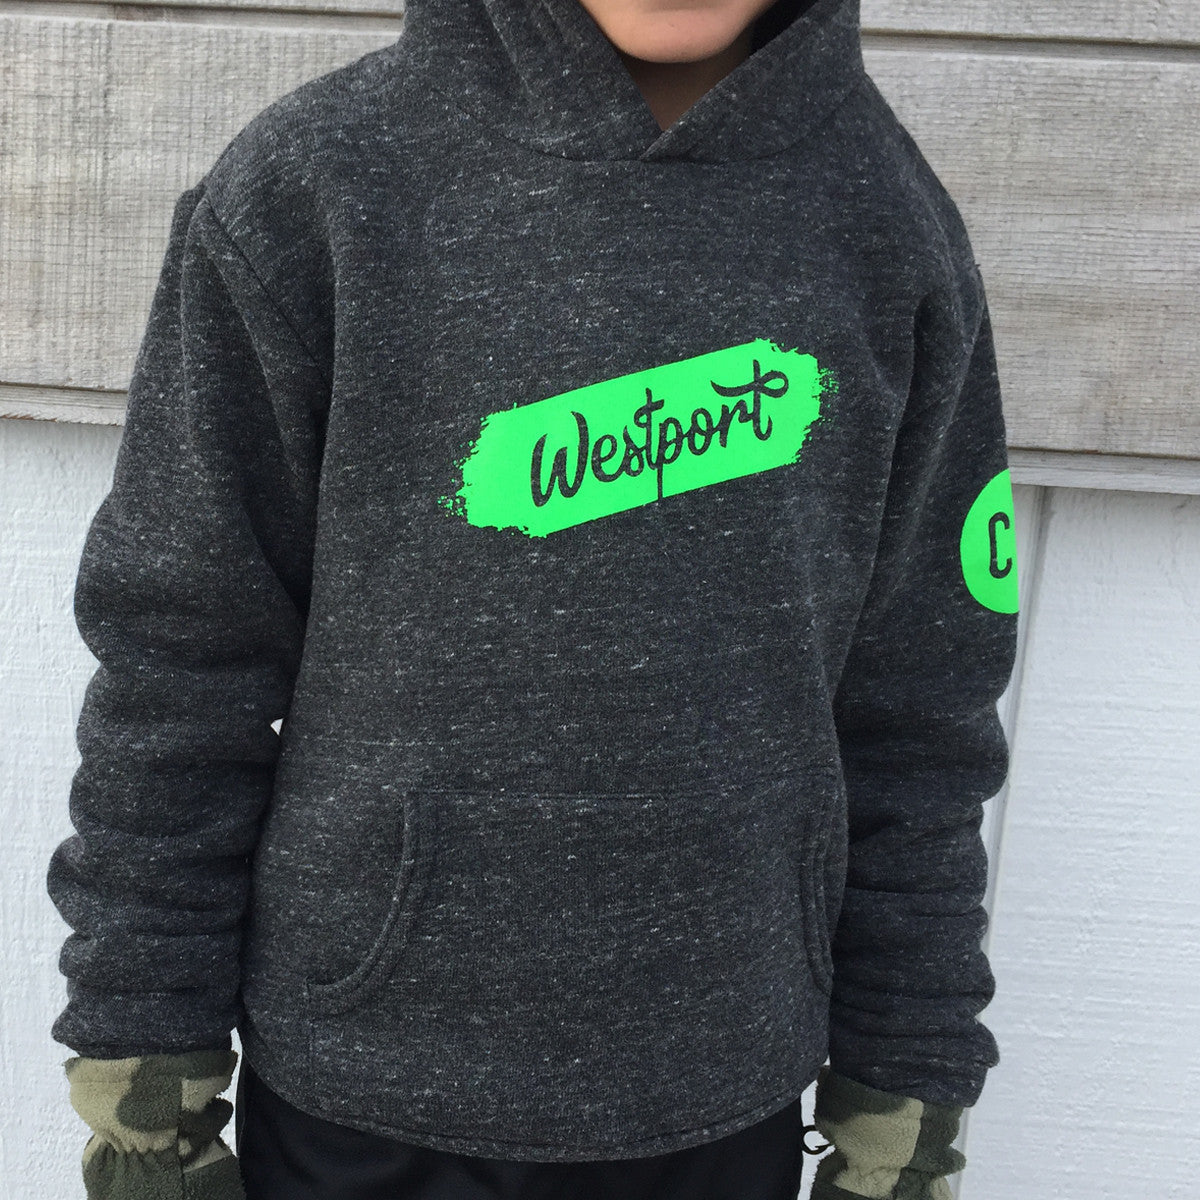 Westport Sweatshirt by Townee - Youth Playground Hoodie (Compo Beach)